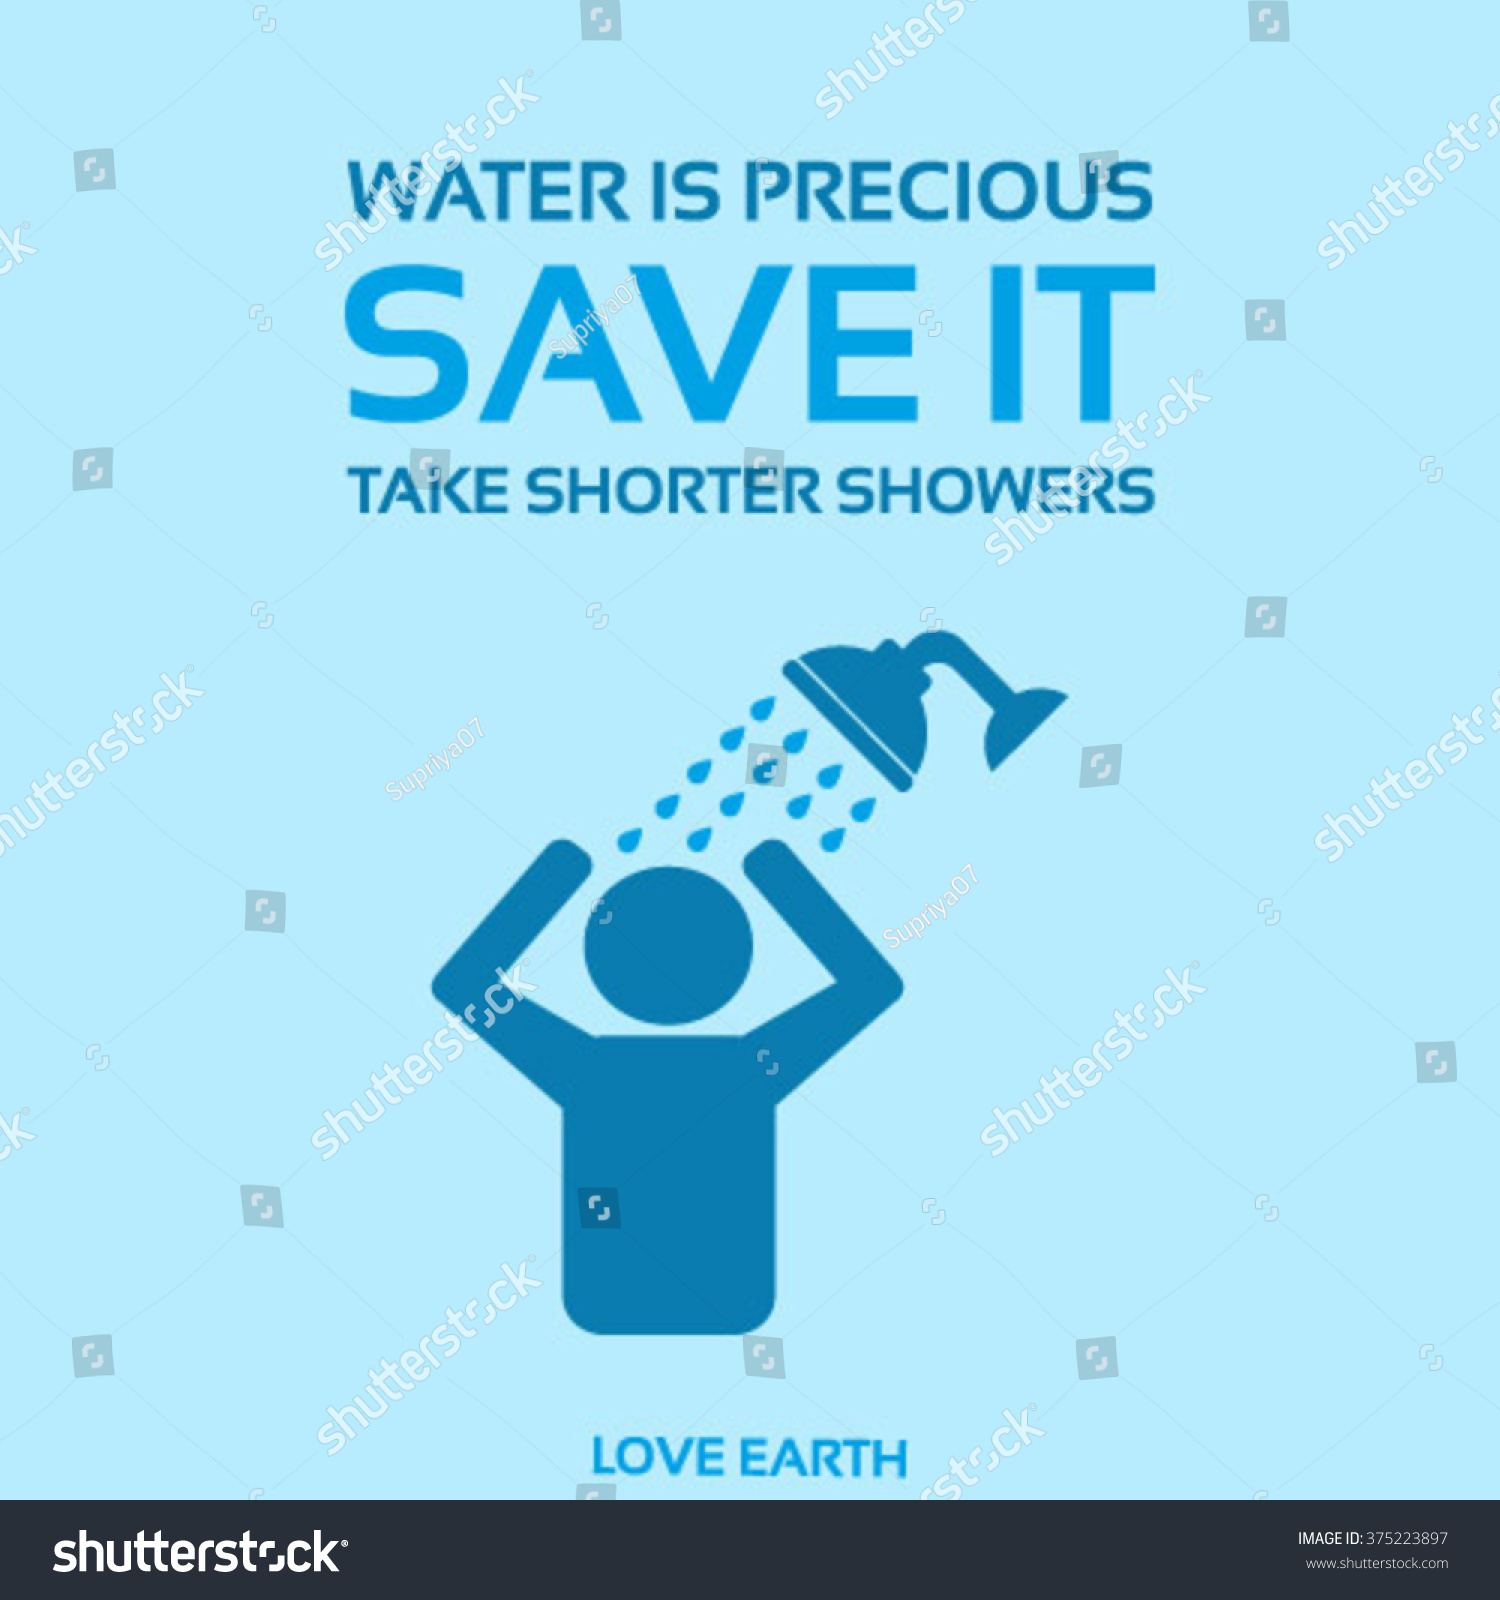 Pin Water Is Precious Save It On Pinterest